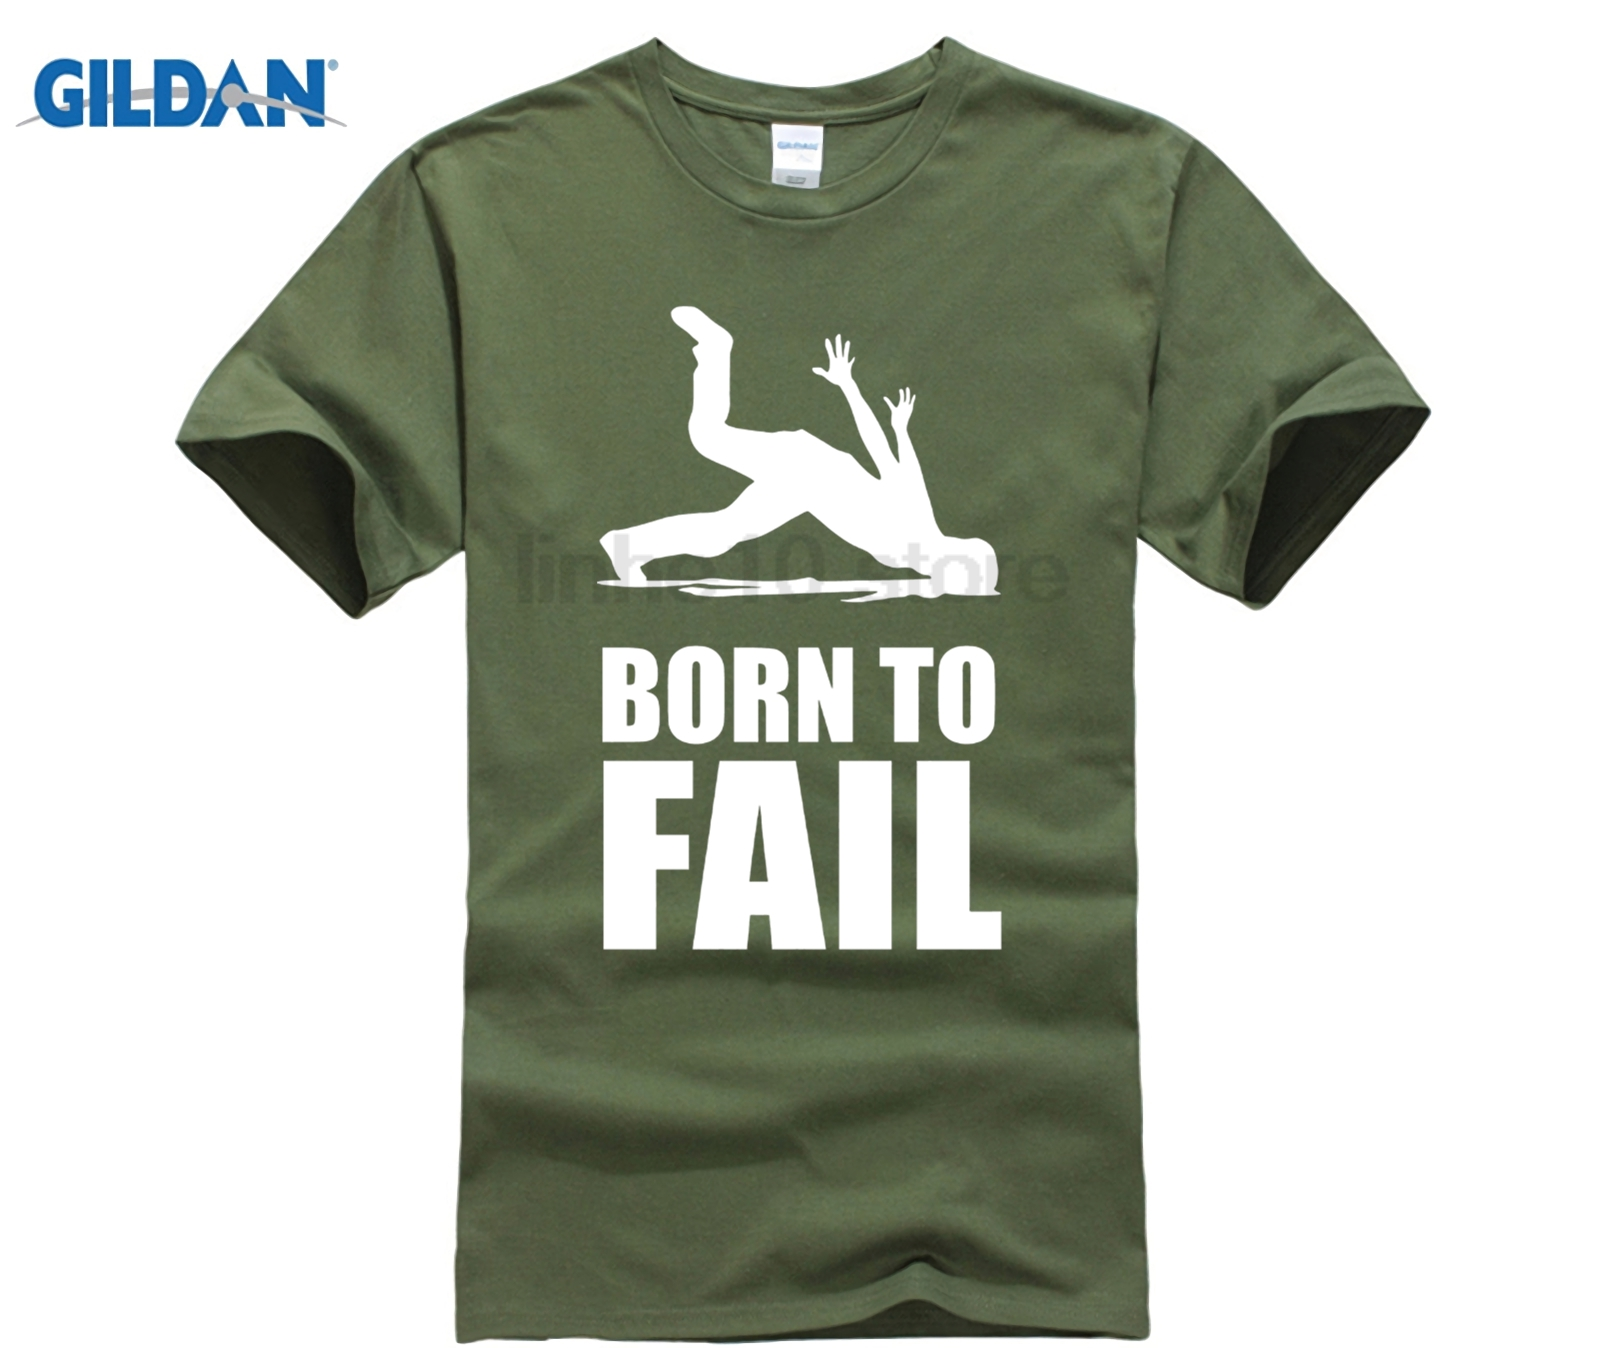 GILDAN 2018 Hot Sale 100% cotton Design T-Shirt Born to Fail Failer Misfortune Fun Funny ...